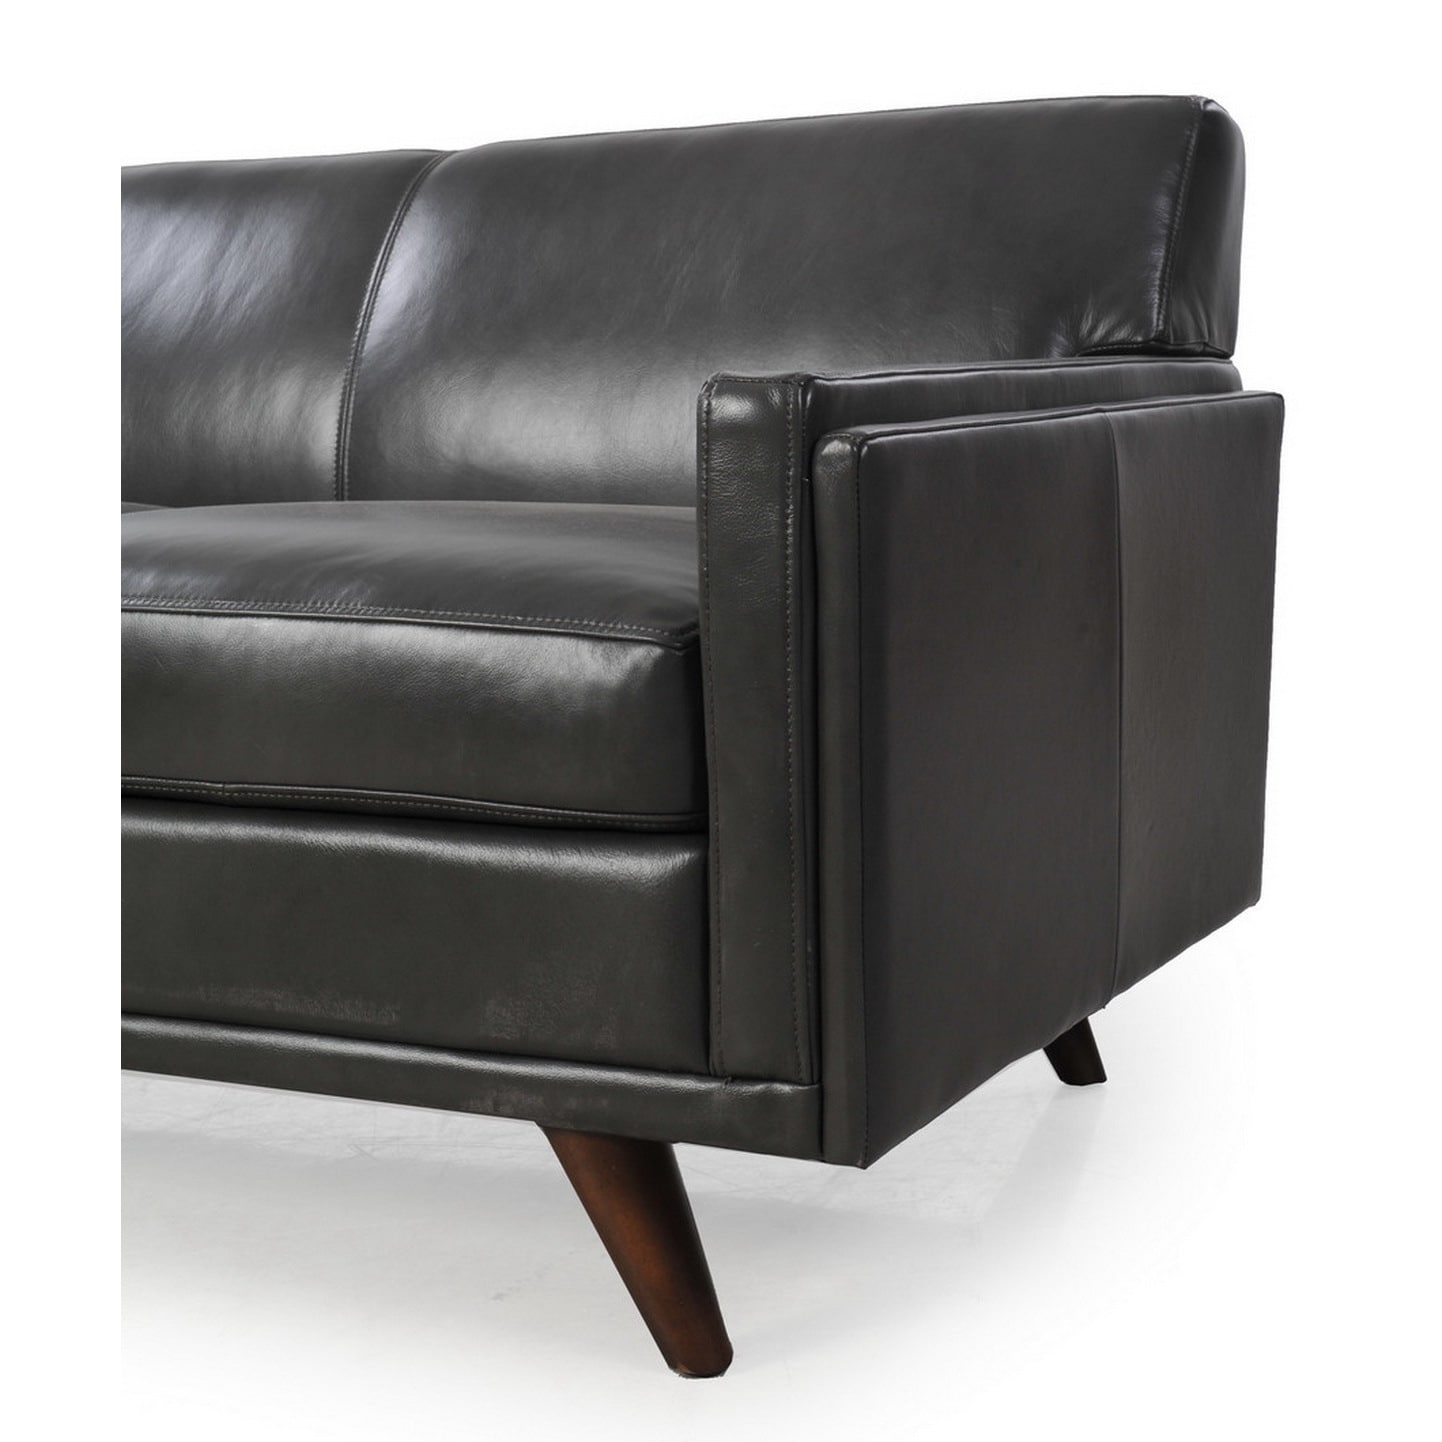 0649aff4c264 Shop Moroni Milo Dark Grey Premium Leather Sofa - Free Shipping Today -  Overstock - 14339248